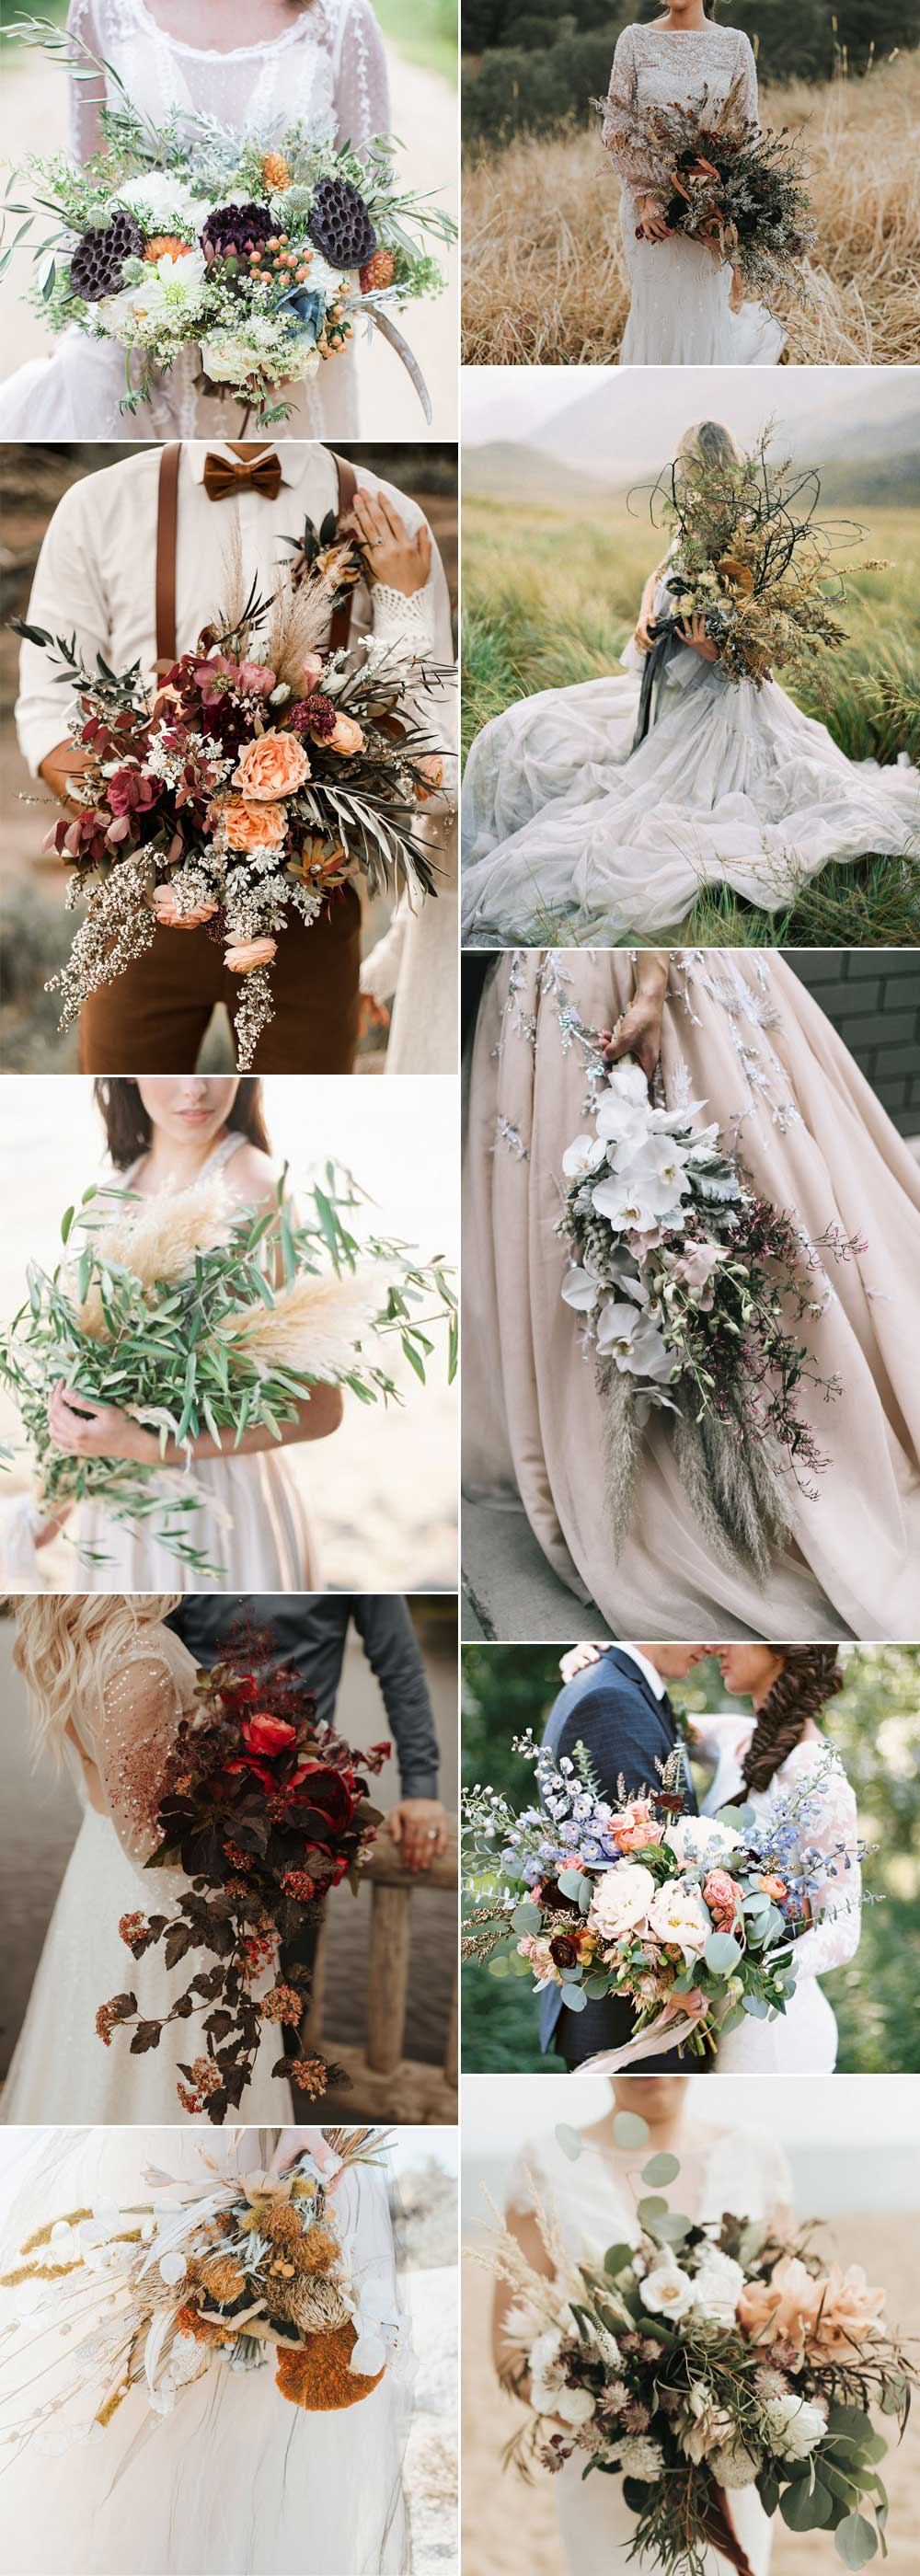 Unusual Bridal Bouquets for your Wedding Day